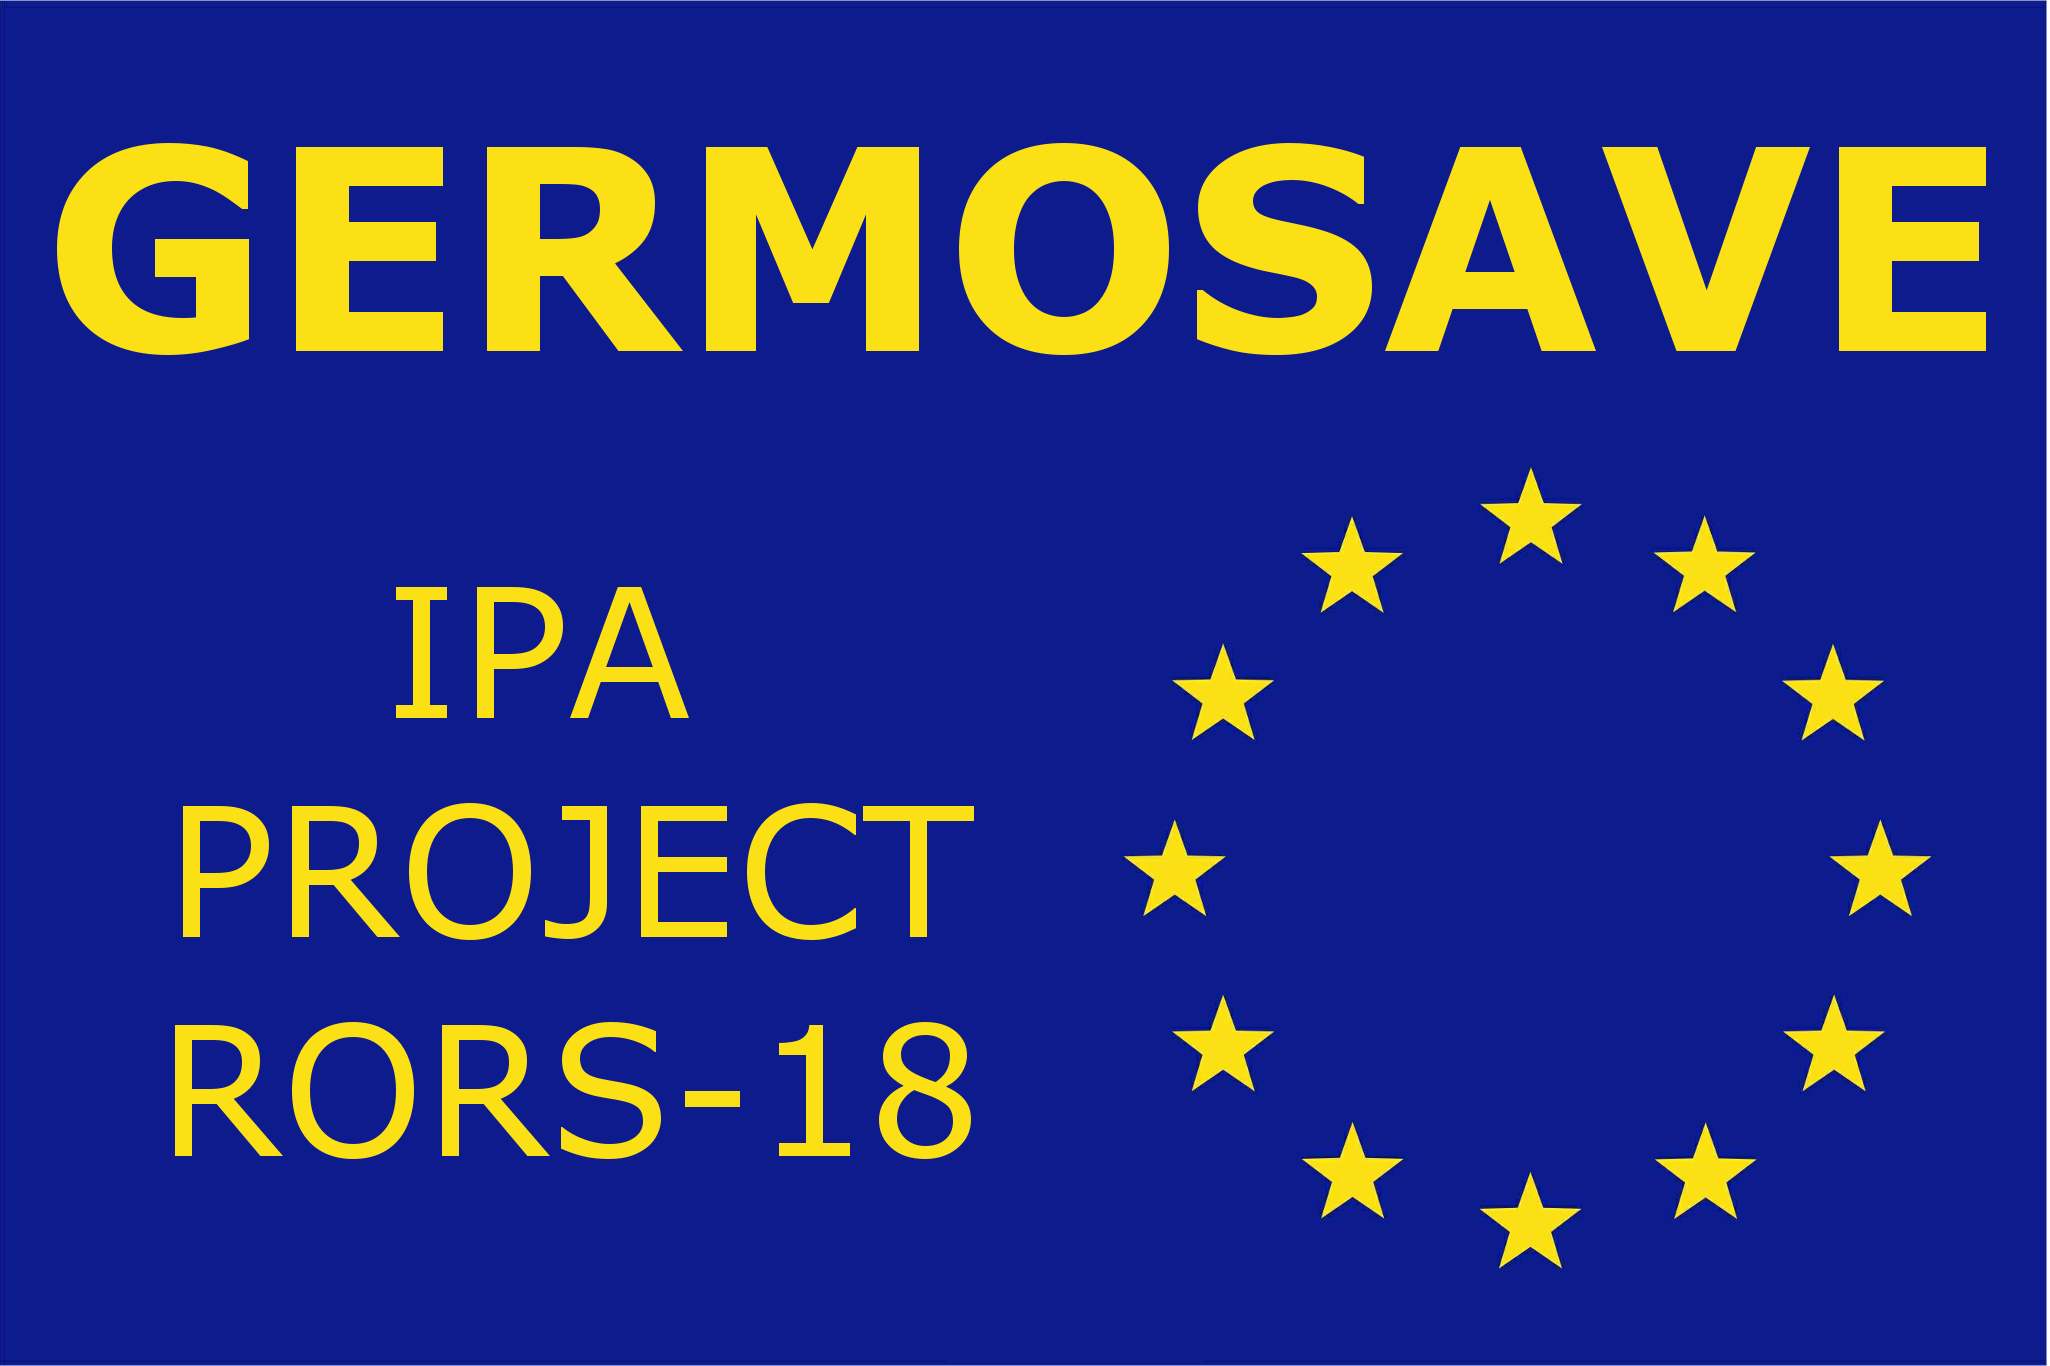 IPA Project: RORS-18